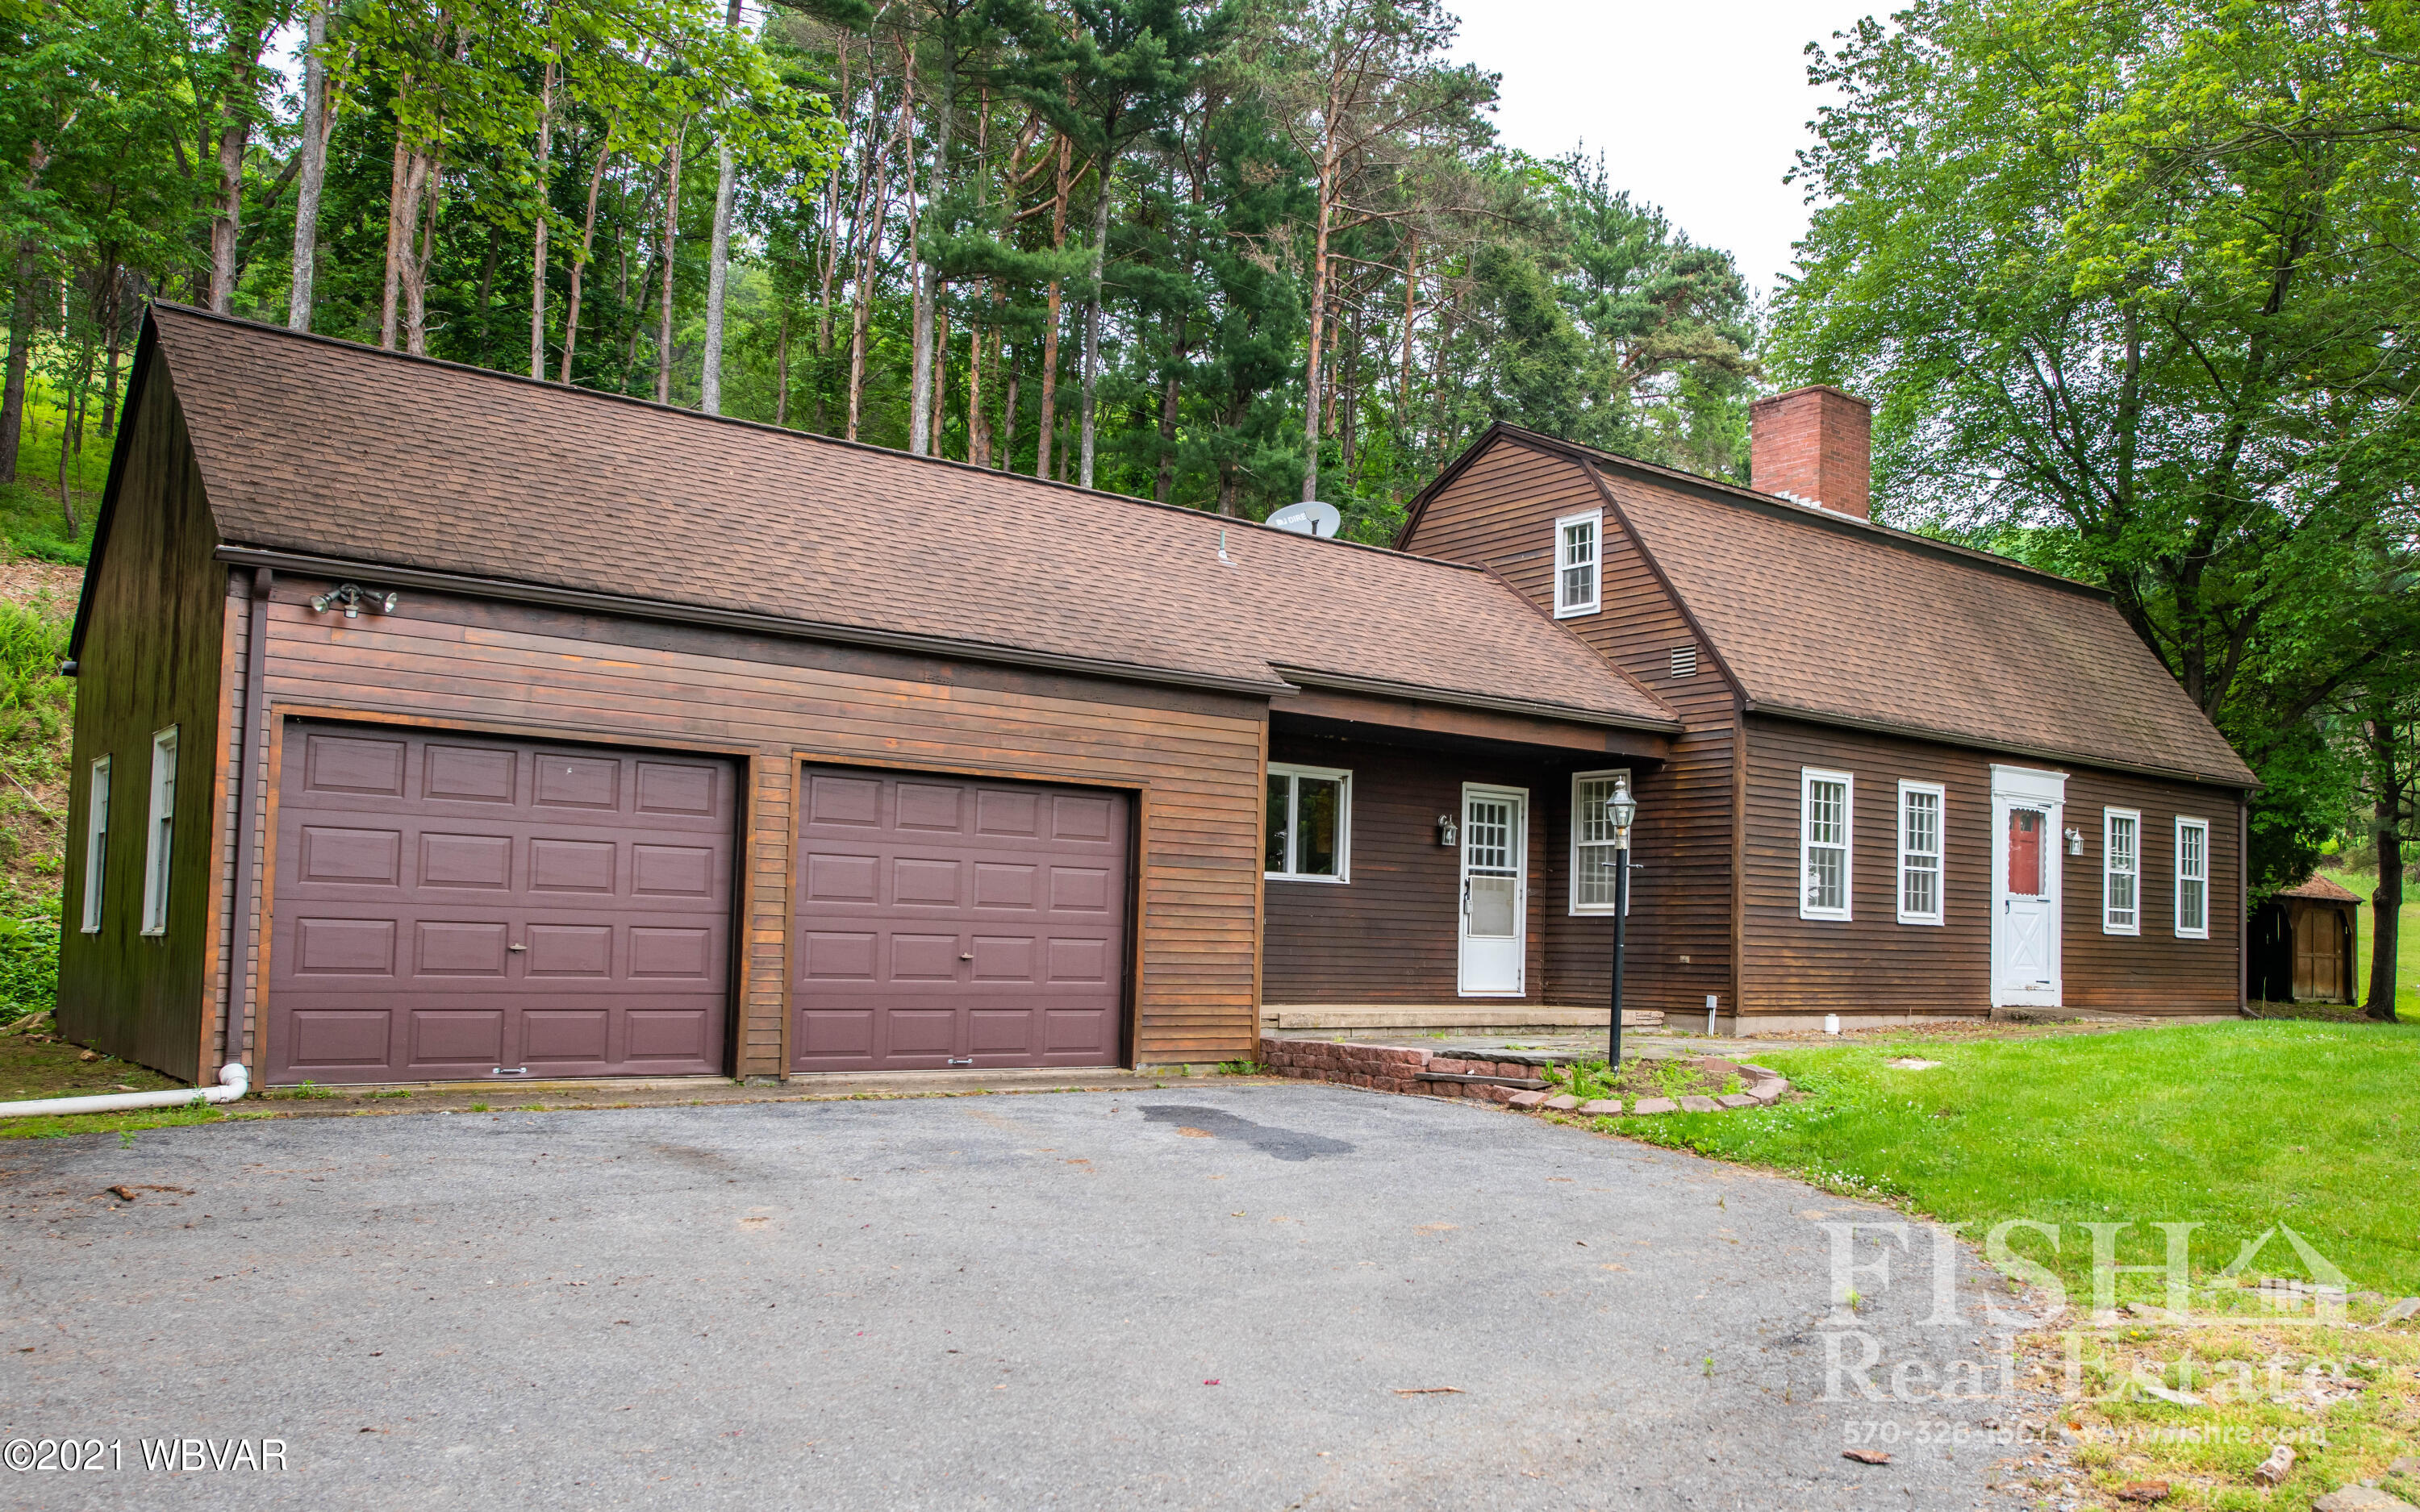 2875 QUAKER STATE ROAD, Montoursville, PA 17754, 3 Bedrooms Bedrooms, ,2.5 BathroomsBathrooms,Residential,For sale,QUAKER STATE,WB-92779